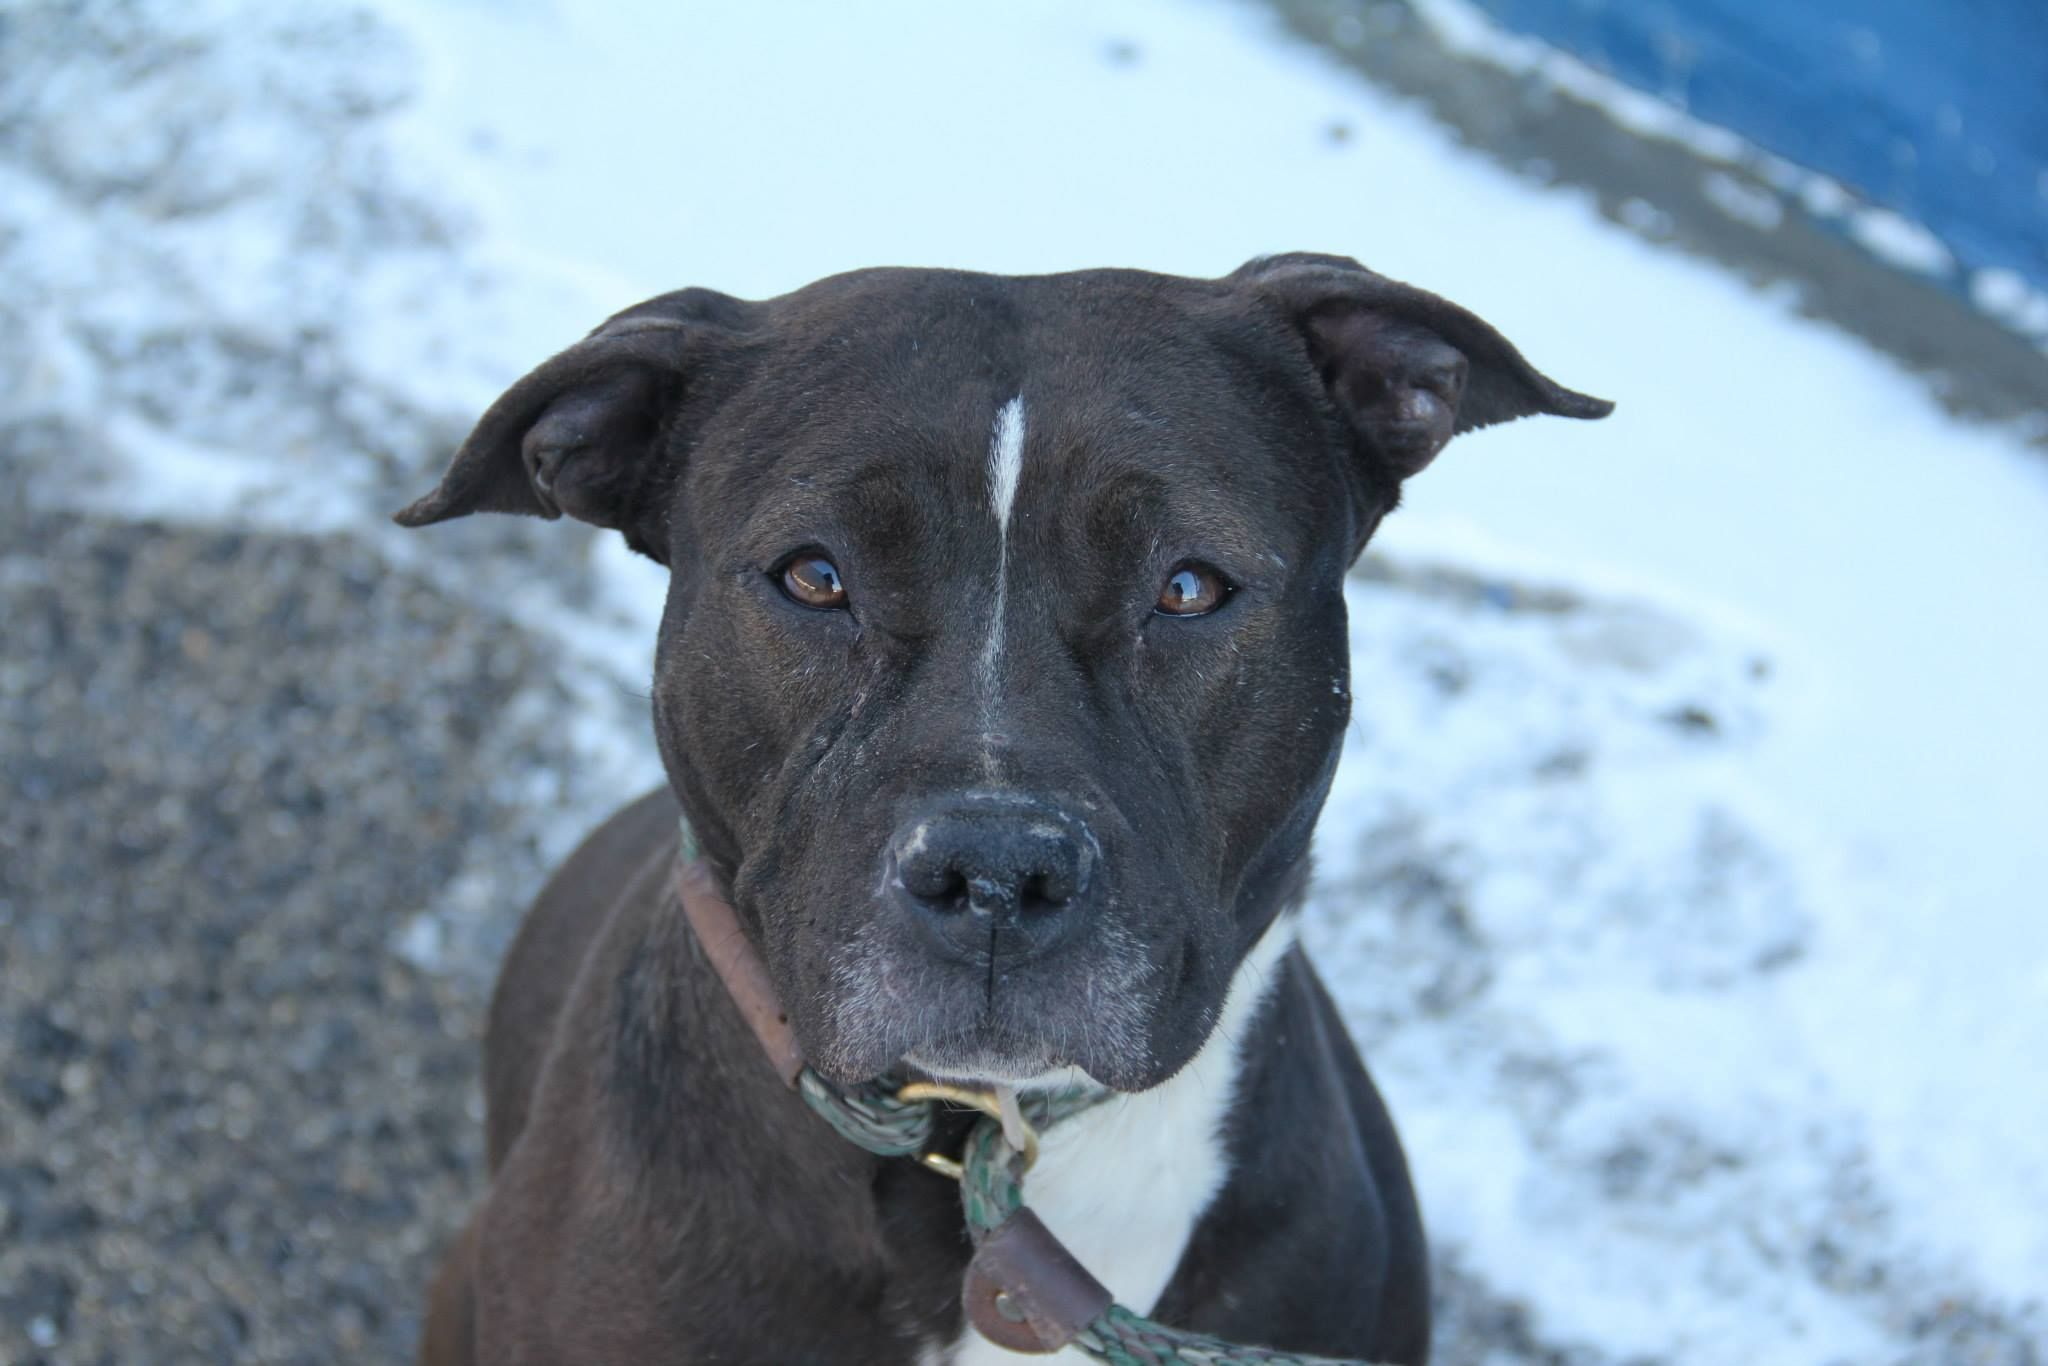 TO BE DESTROYED 02/05/14 Brooklyn Center P My name is